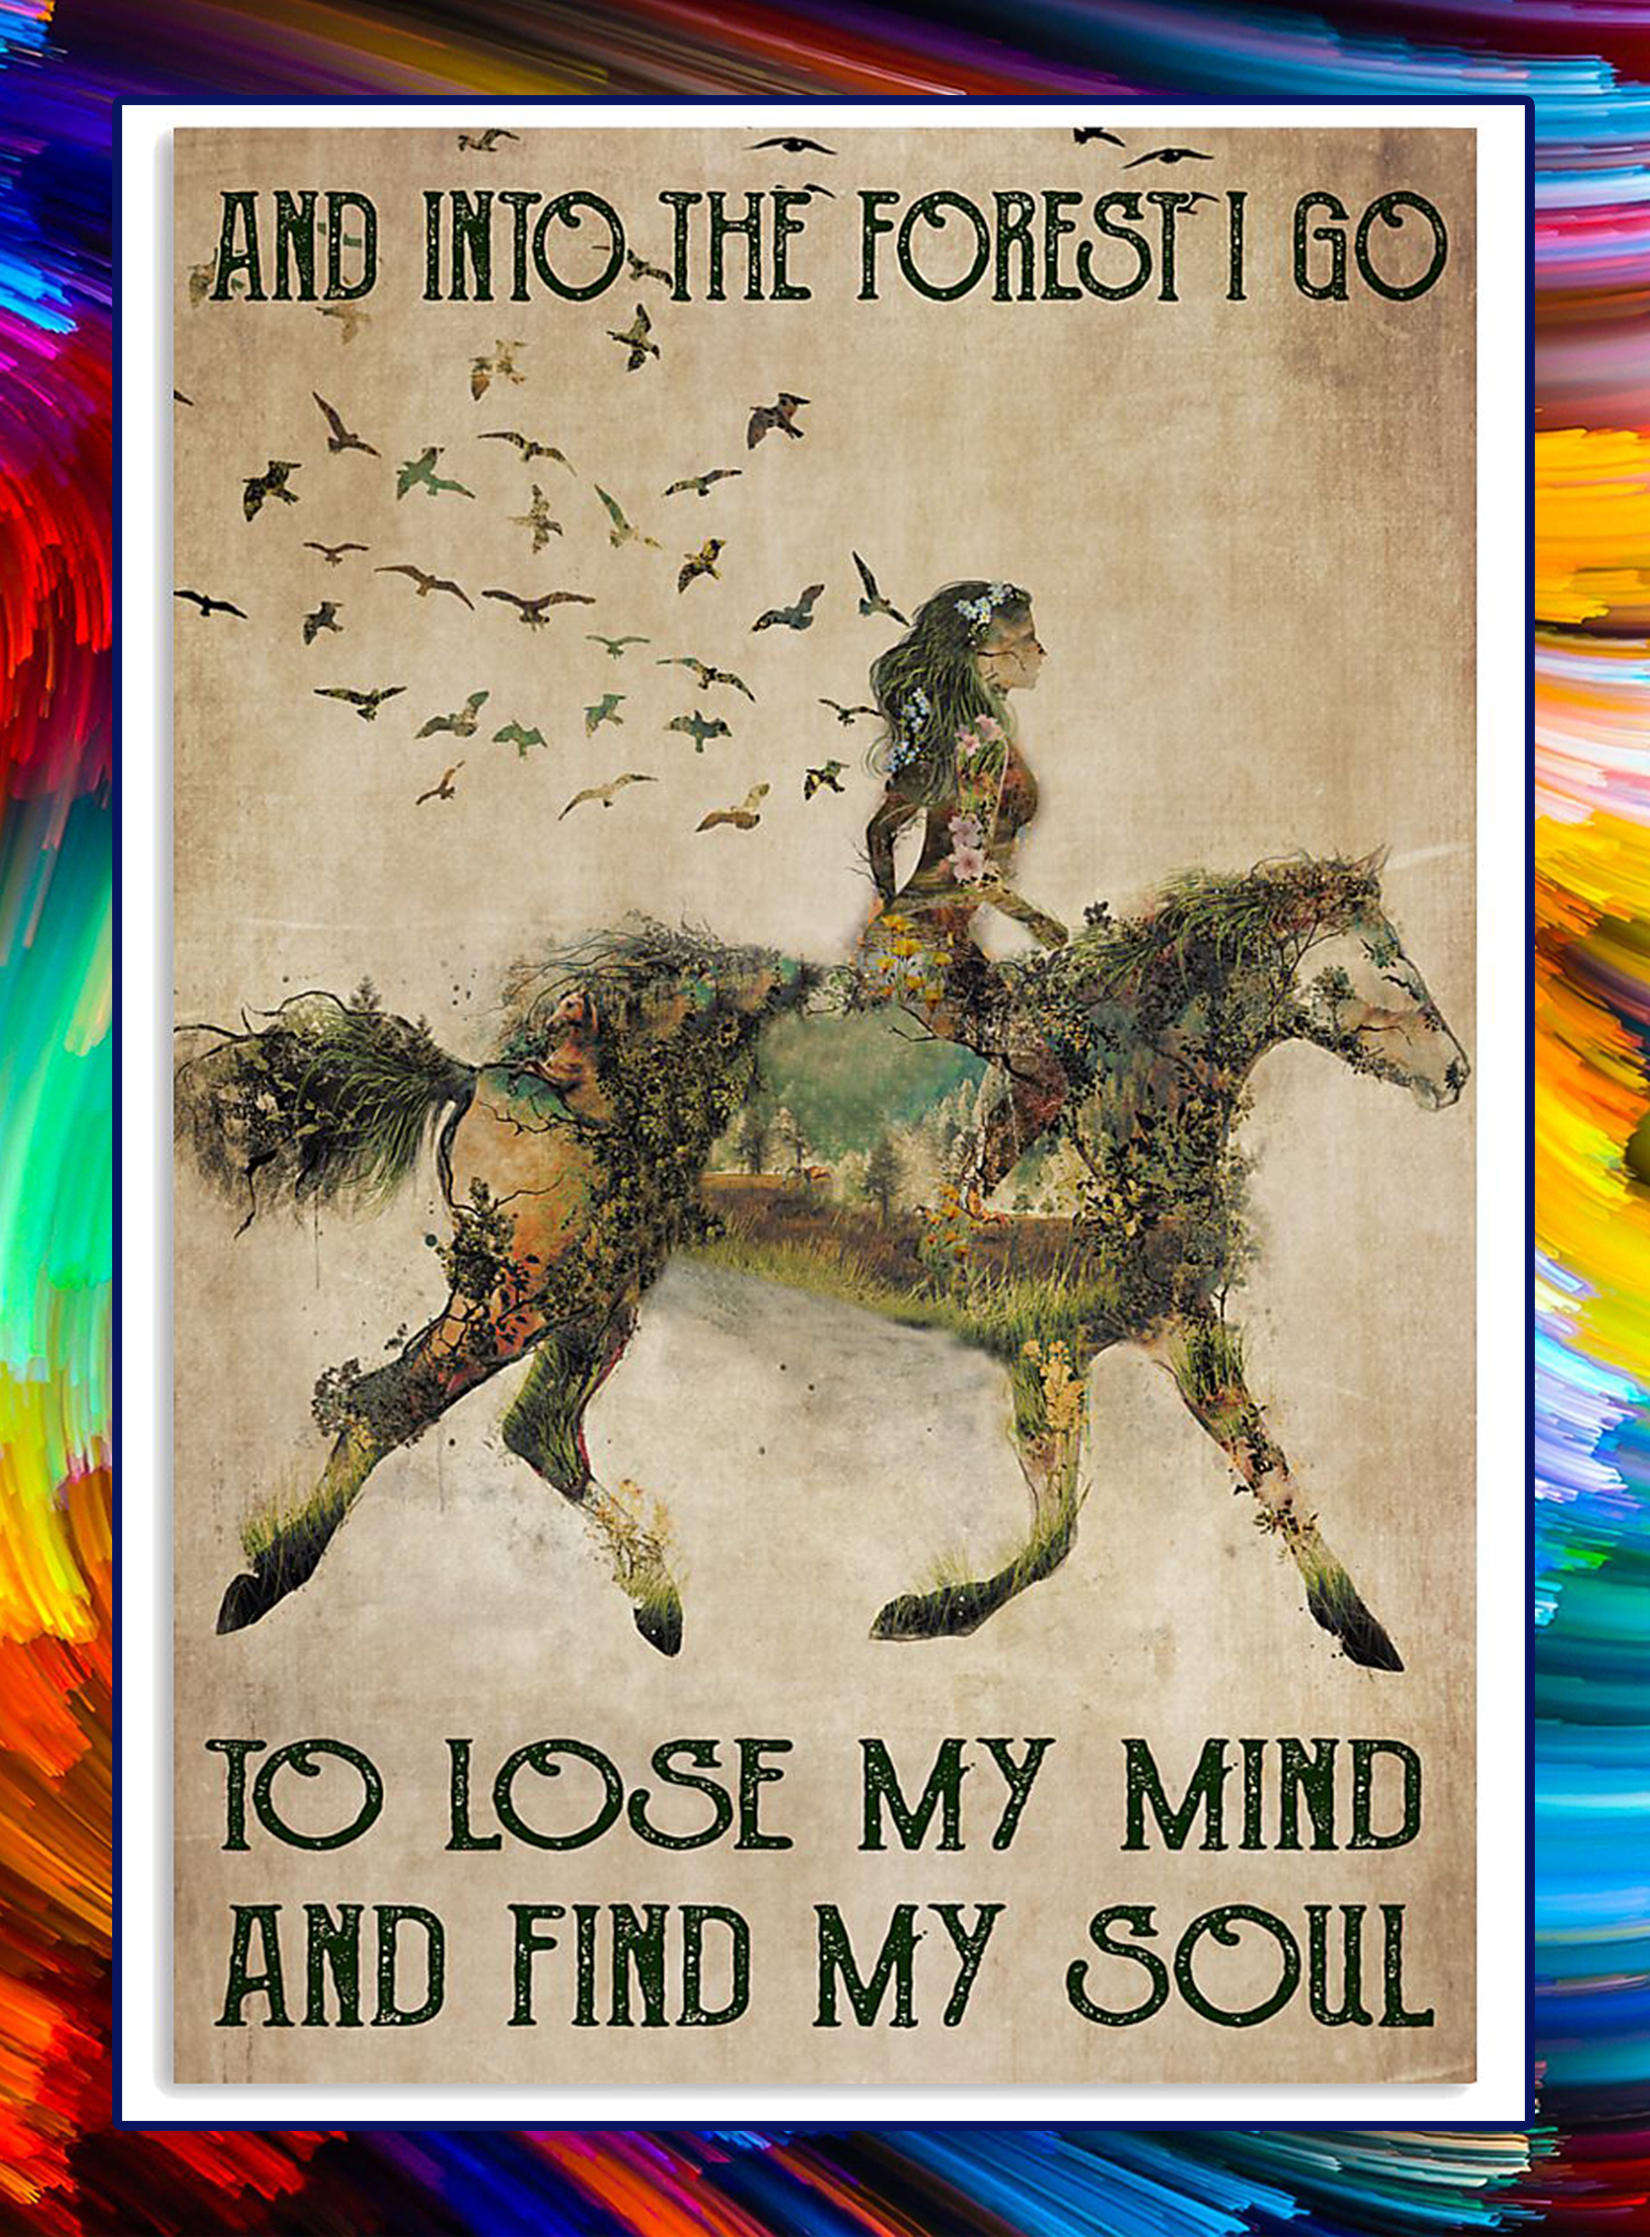 Horse And into forest i go to lose my mind and find my soul poster - A4